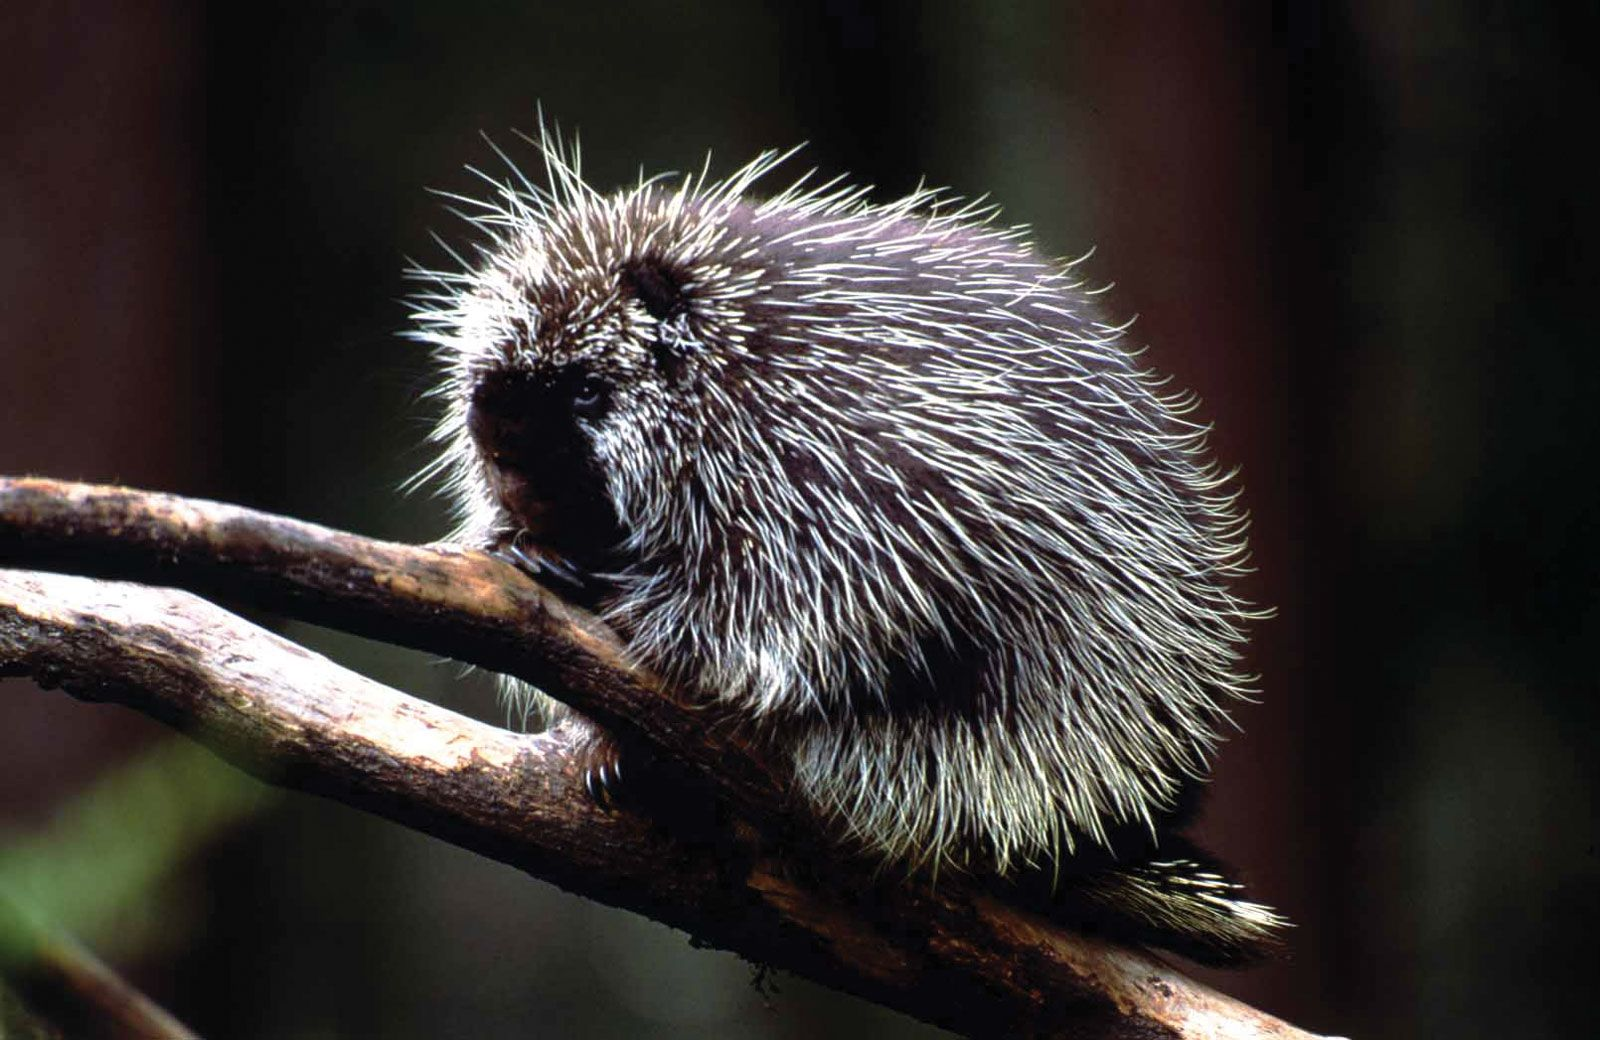 North American Porcupine (With images) Porcupine